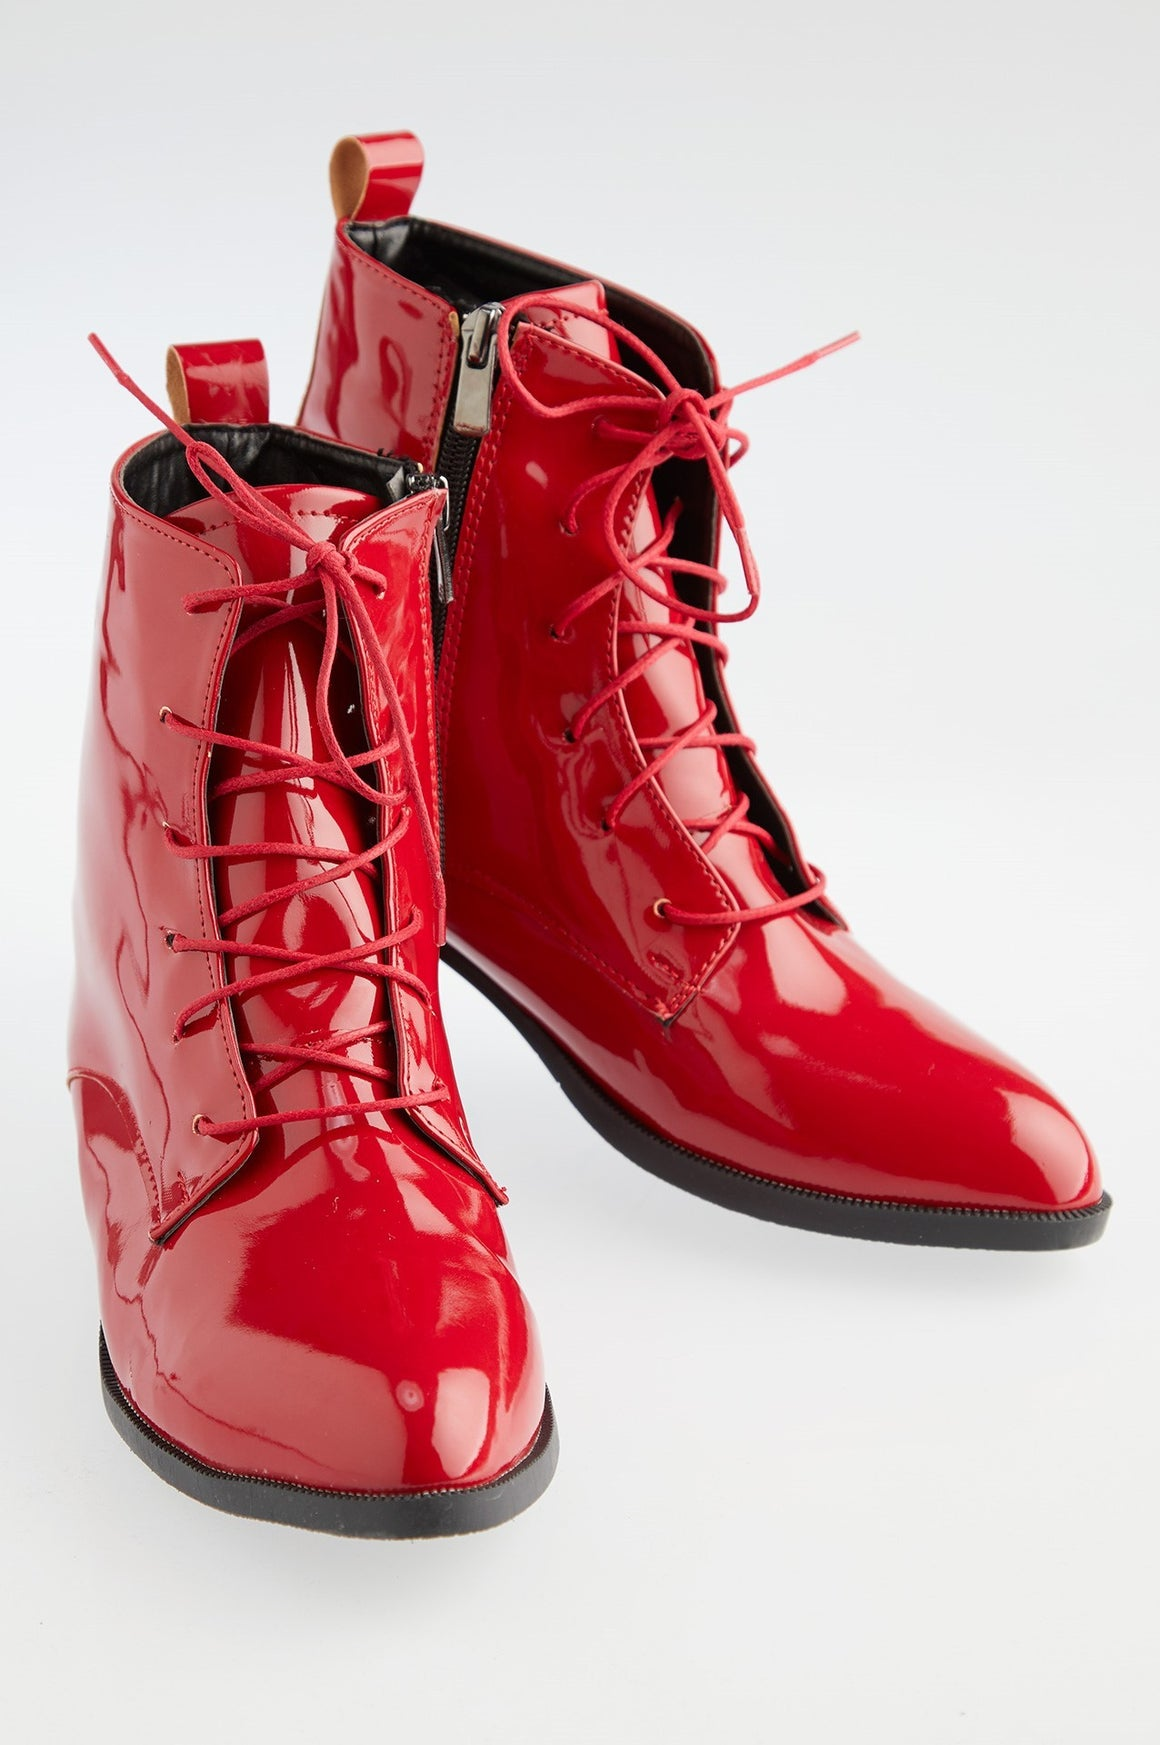 Women's Red Patent Leather Boots